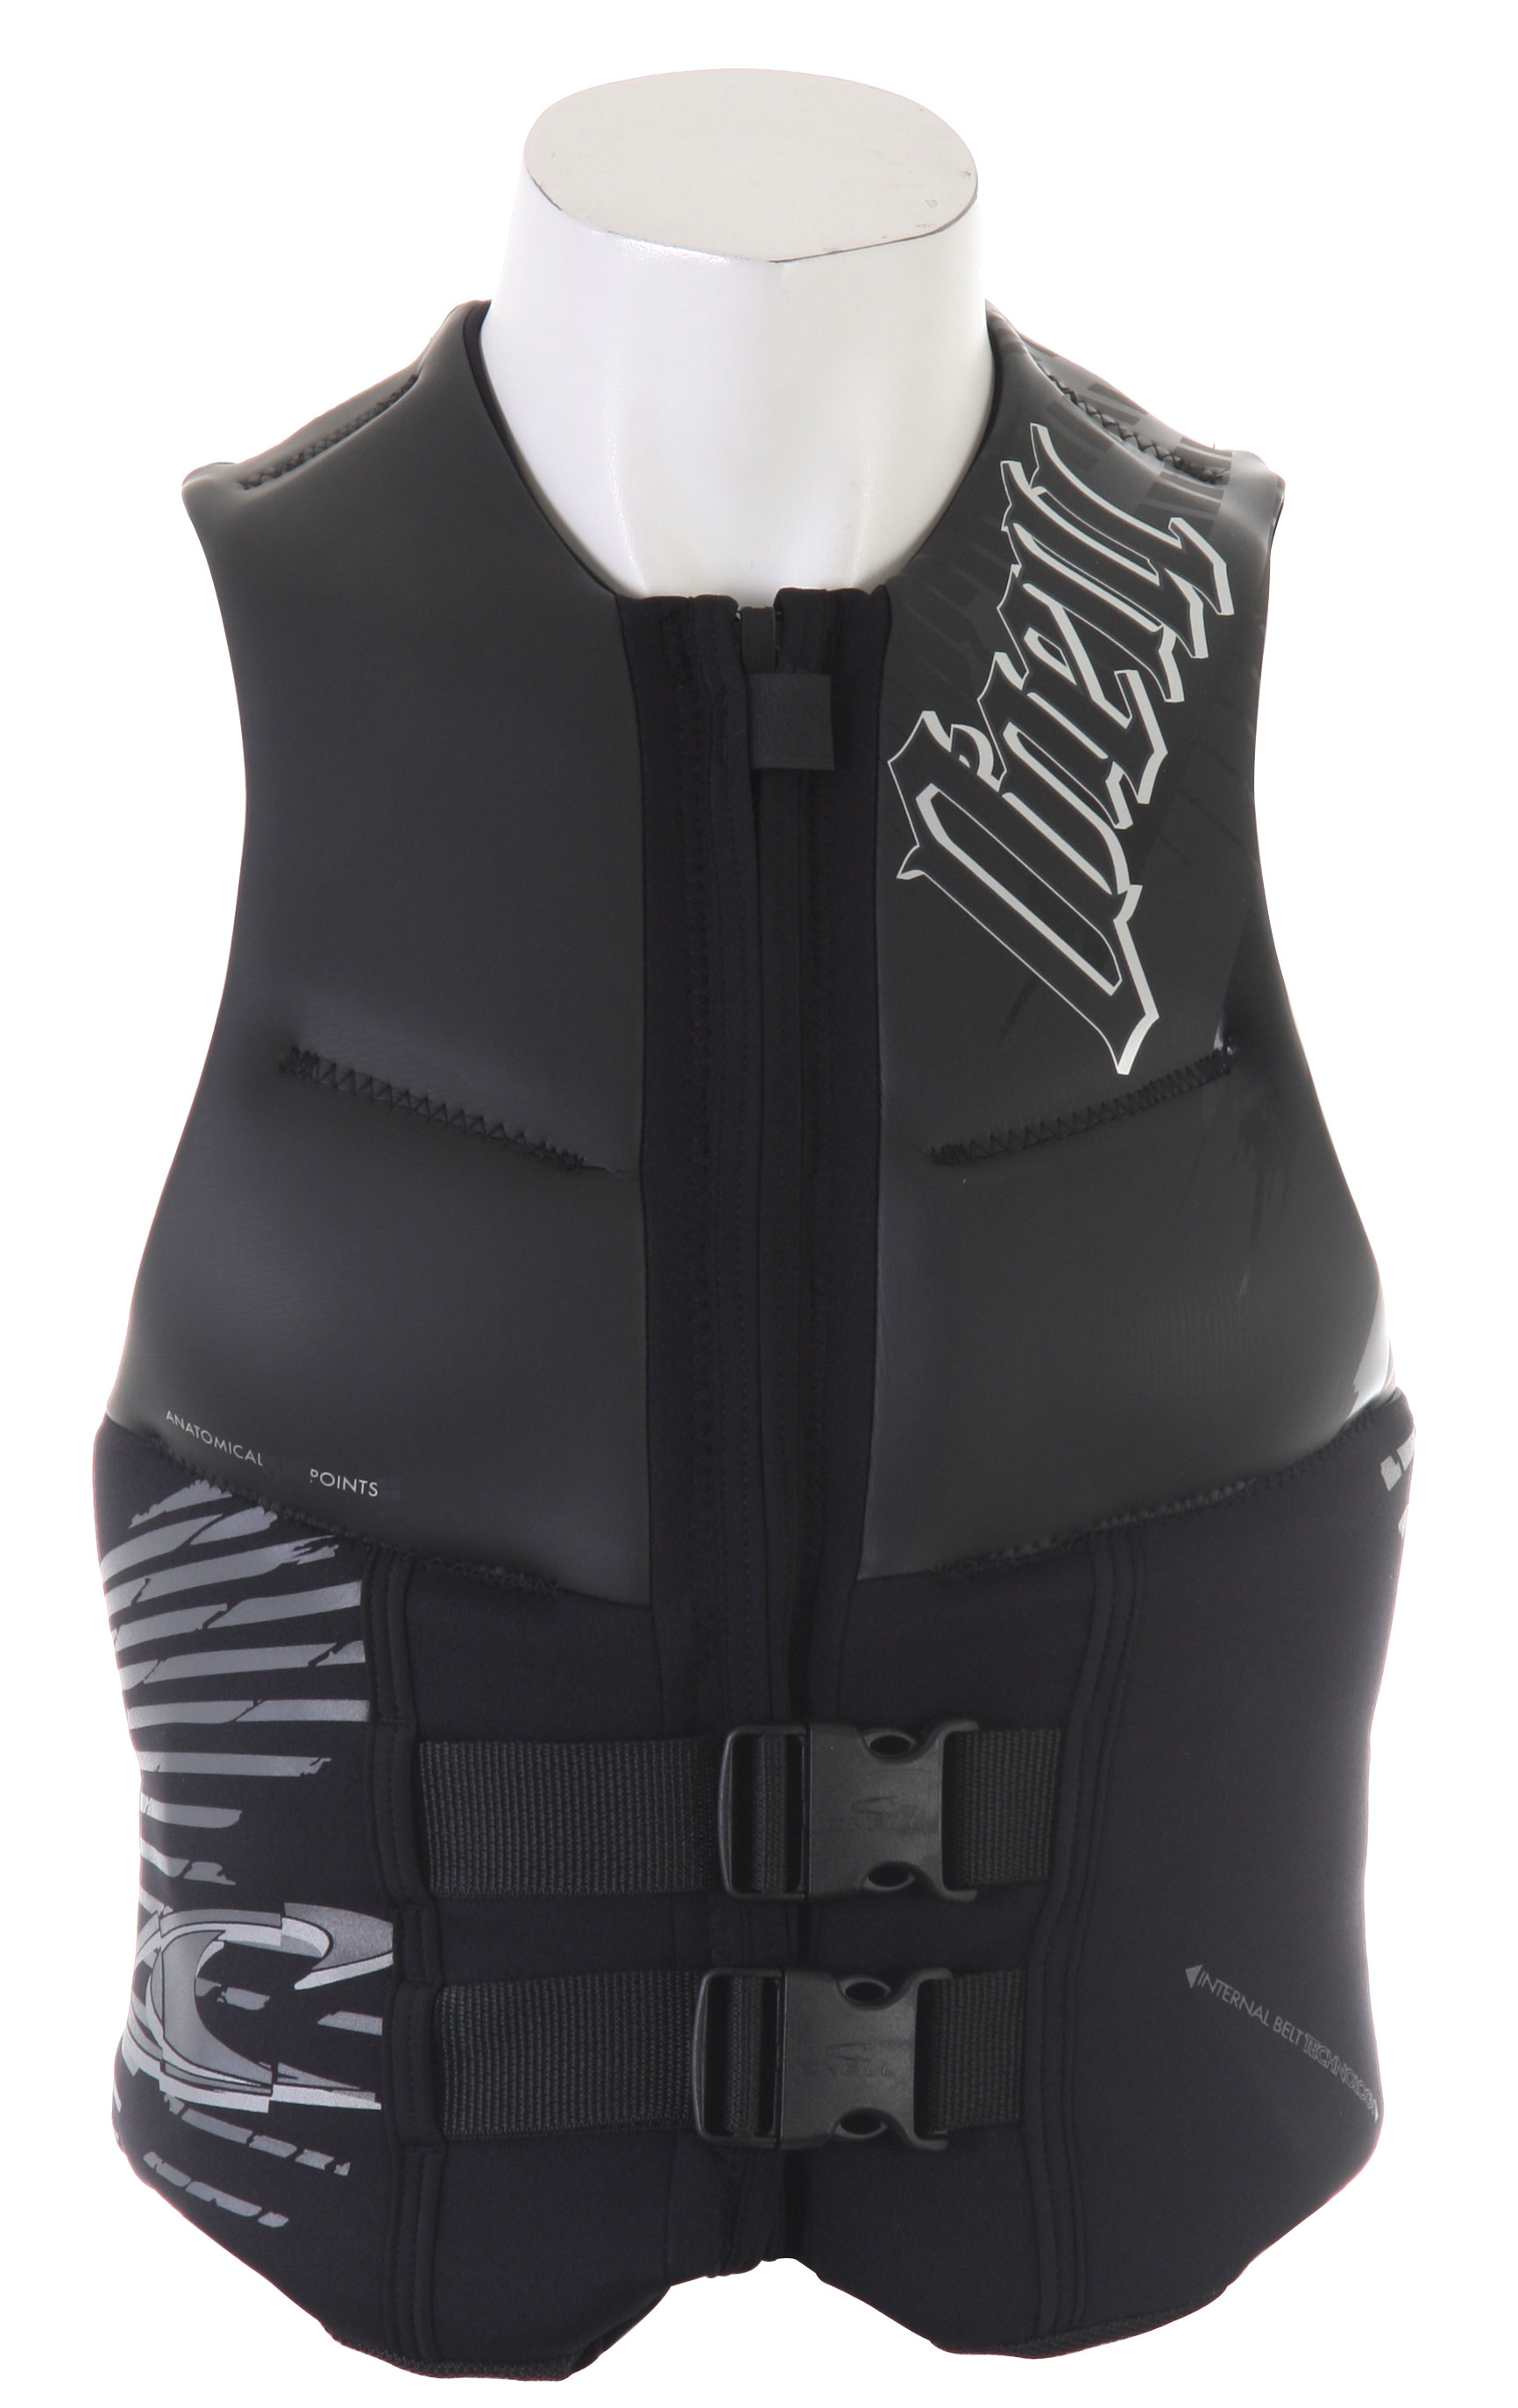 Wake The O'Neill Outlaw model full size comp vest provides a highly mobile and low impact design that fits perfectly while still offering excellent flexibility. The unique styling is cool and modern, very sleek with minimal excess. Flex guards are placed at specific locations to avoid having this comp vest get in the way, and it's lightweight foam core base material will keep you above water when you need it to most. The Outlaw is perfect for a wakeboarder looking for a sleek and modern front buckle safety vest that won't get in the way.Key Features of the O'Neill Outlaw Comp Wakeboard Vest: Comp Vest Anatomical flex points Segmented foam core Concealed belt system Minimal bulk Wind resistant glideskin Lightweight fluid foam Integrated dual belt Quick-release dual safety buckles - $72.95